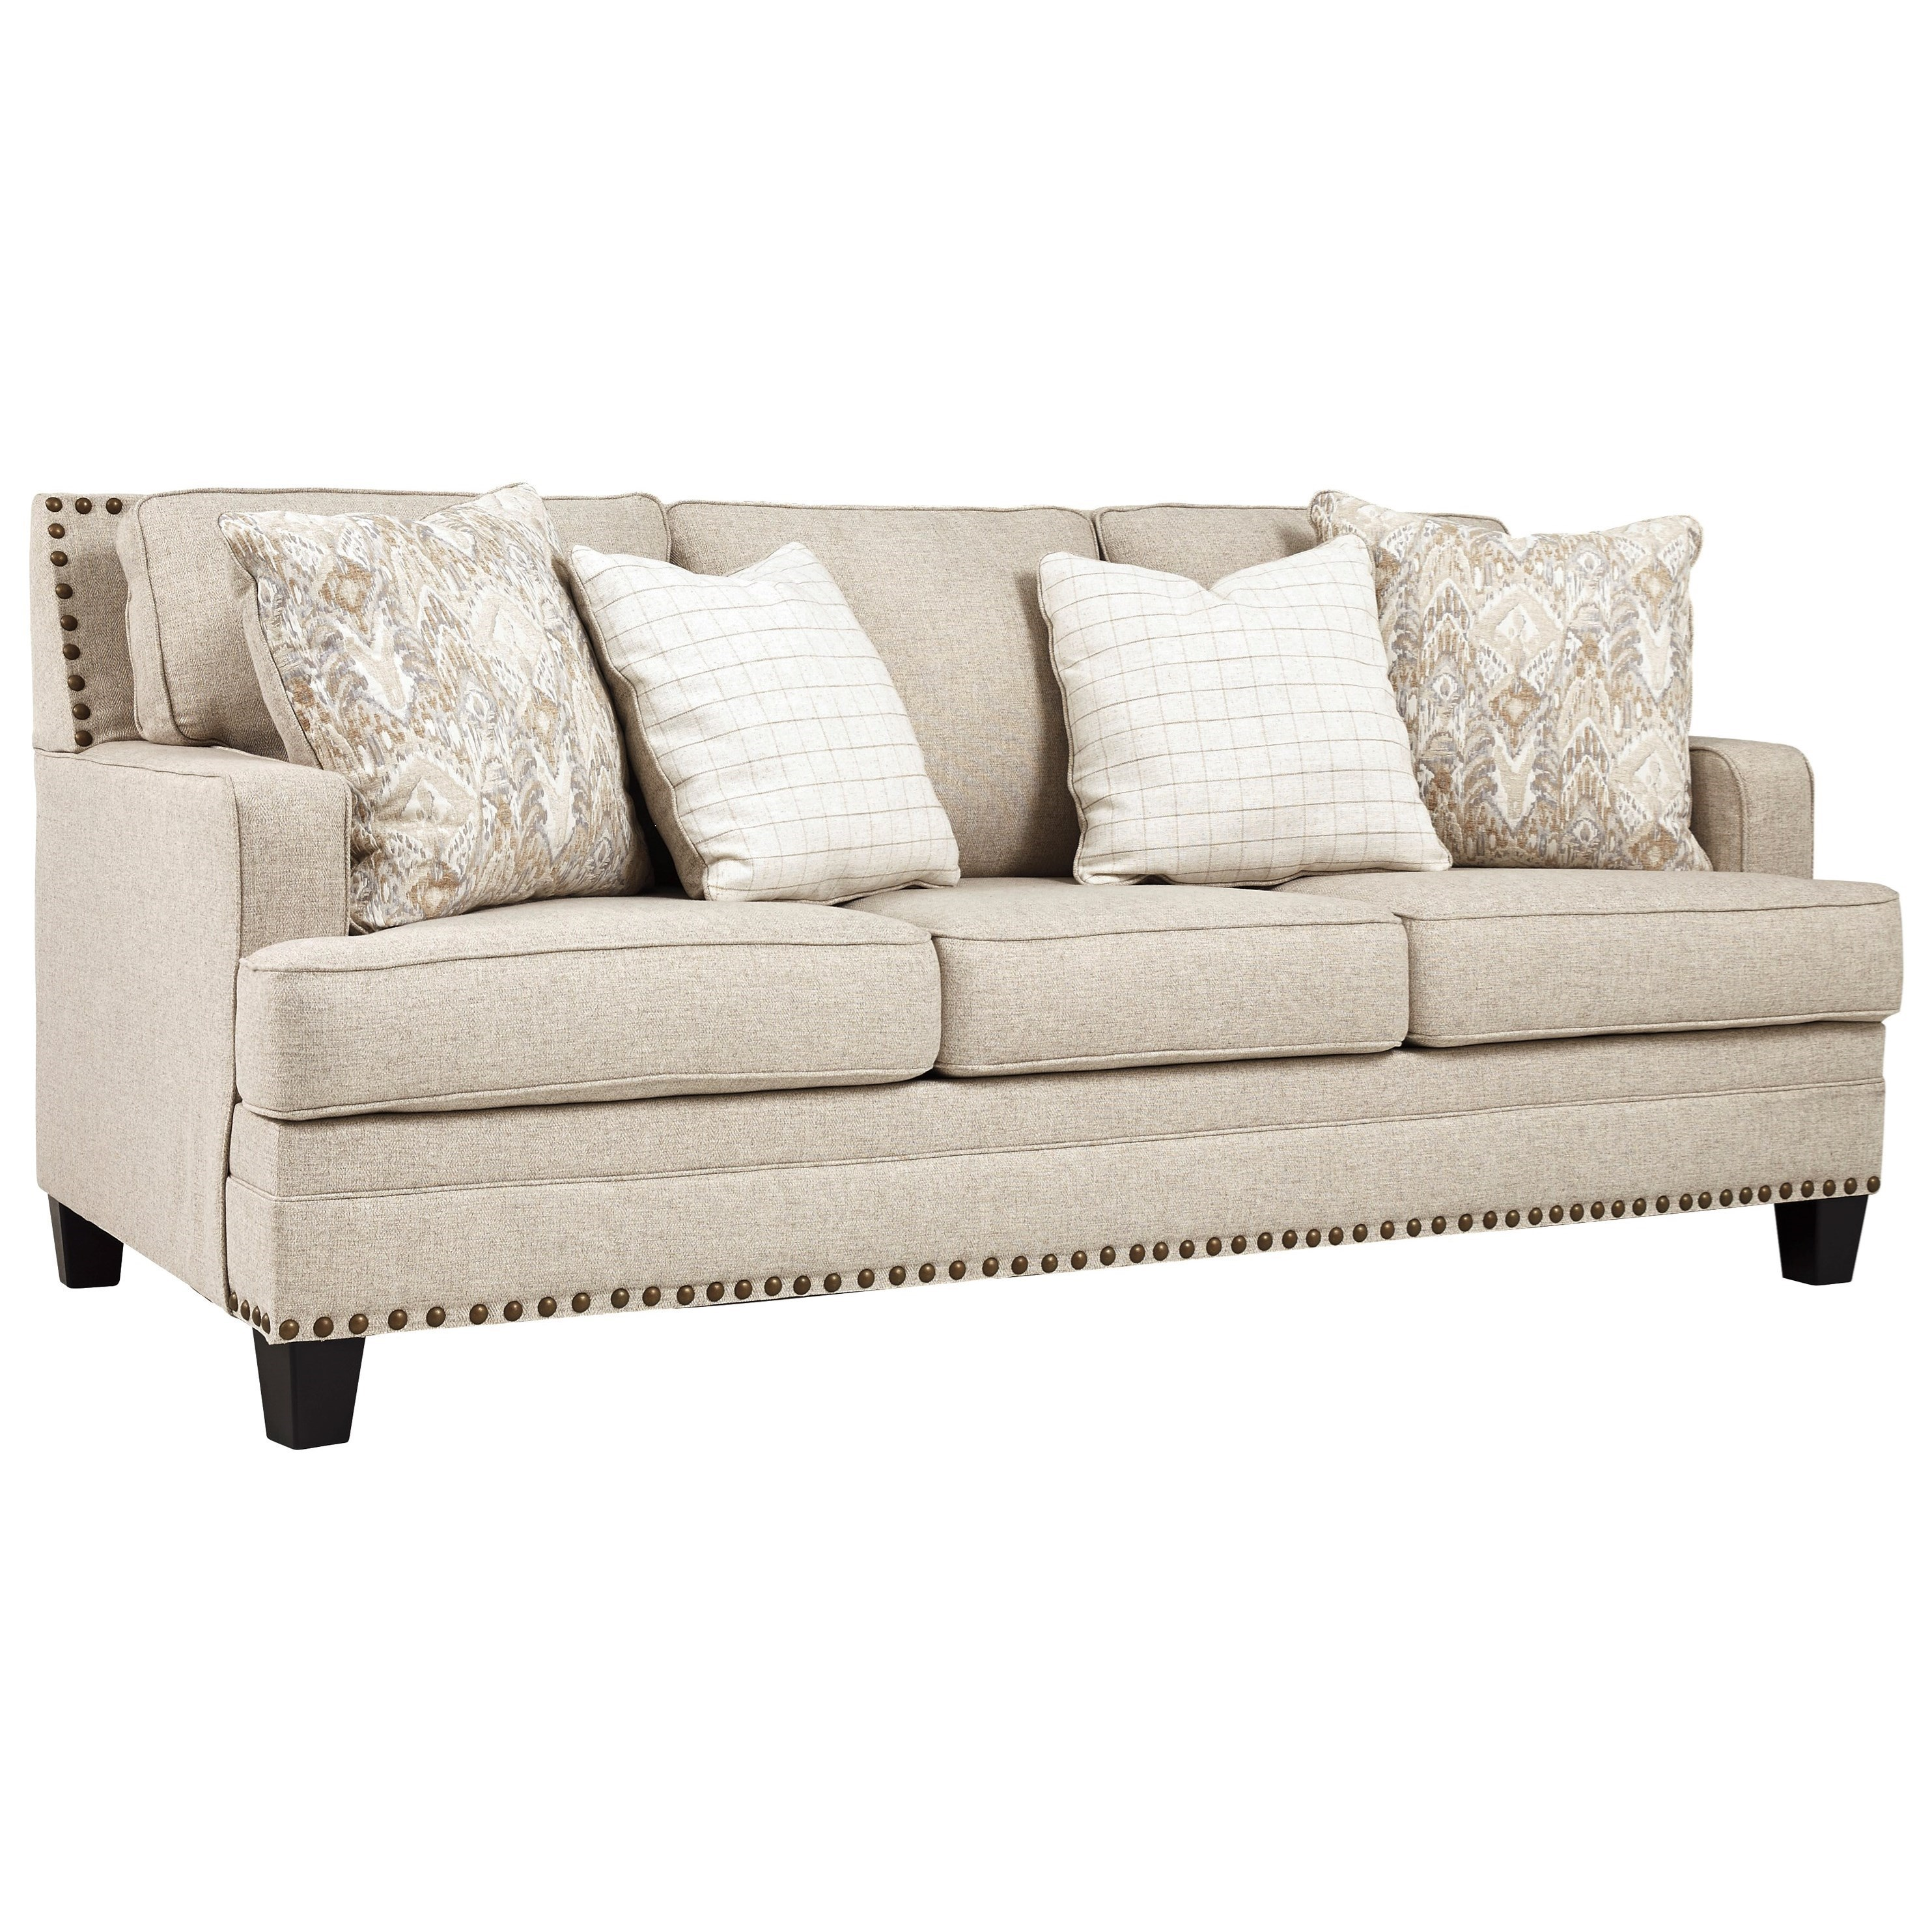 Picture of: Benchcraft By Ashley Claredon Transitional Sofa With Nailhead Trim Royal Furniture Sofas